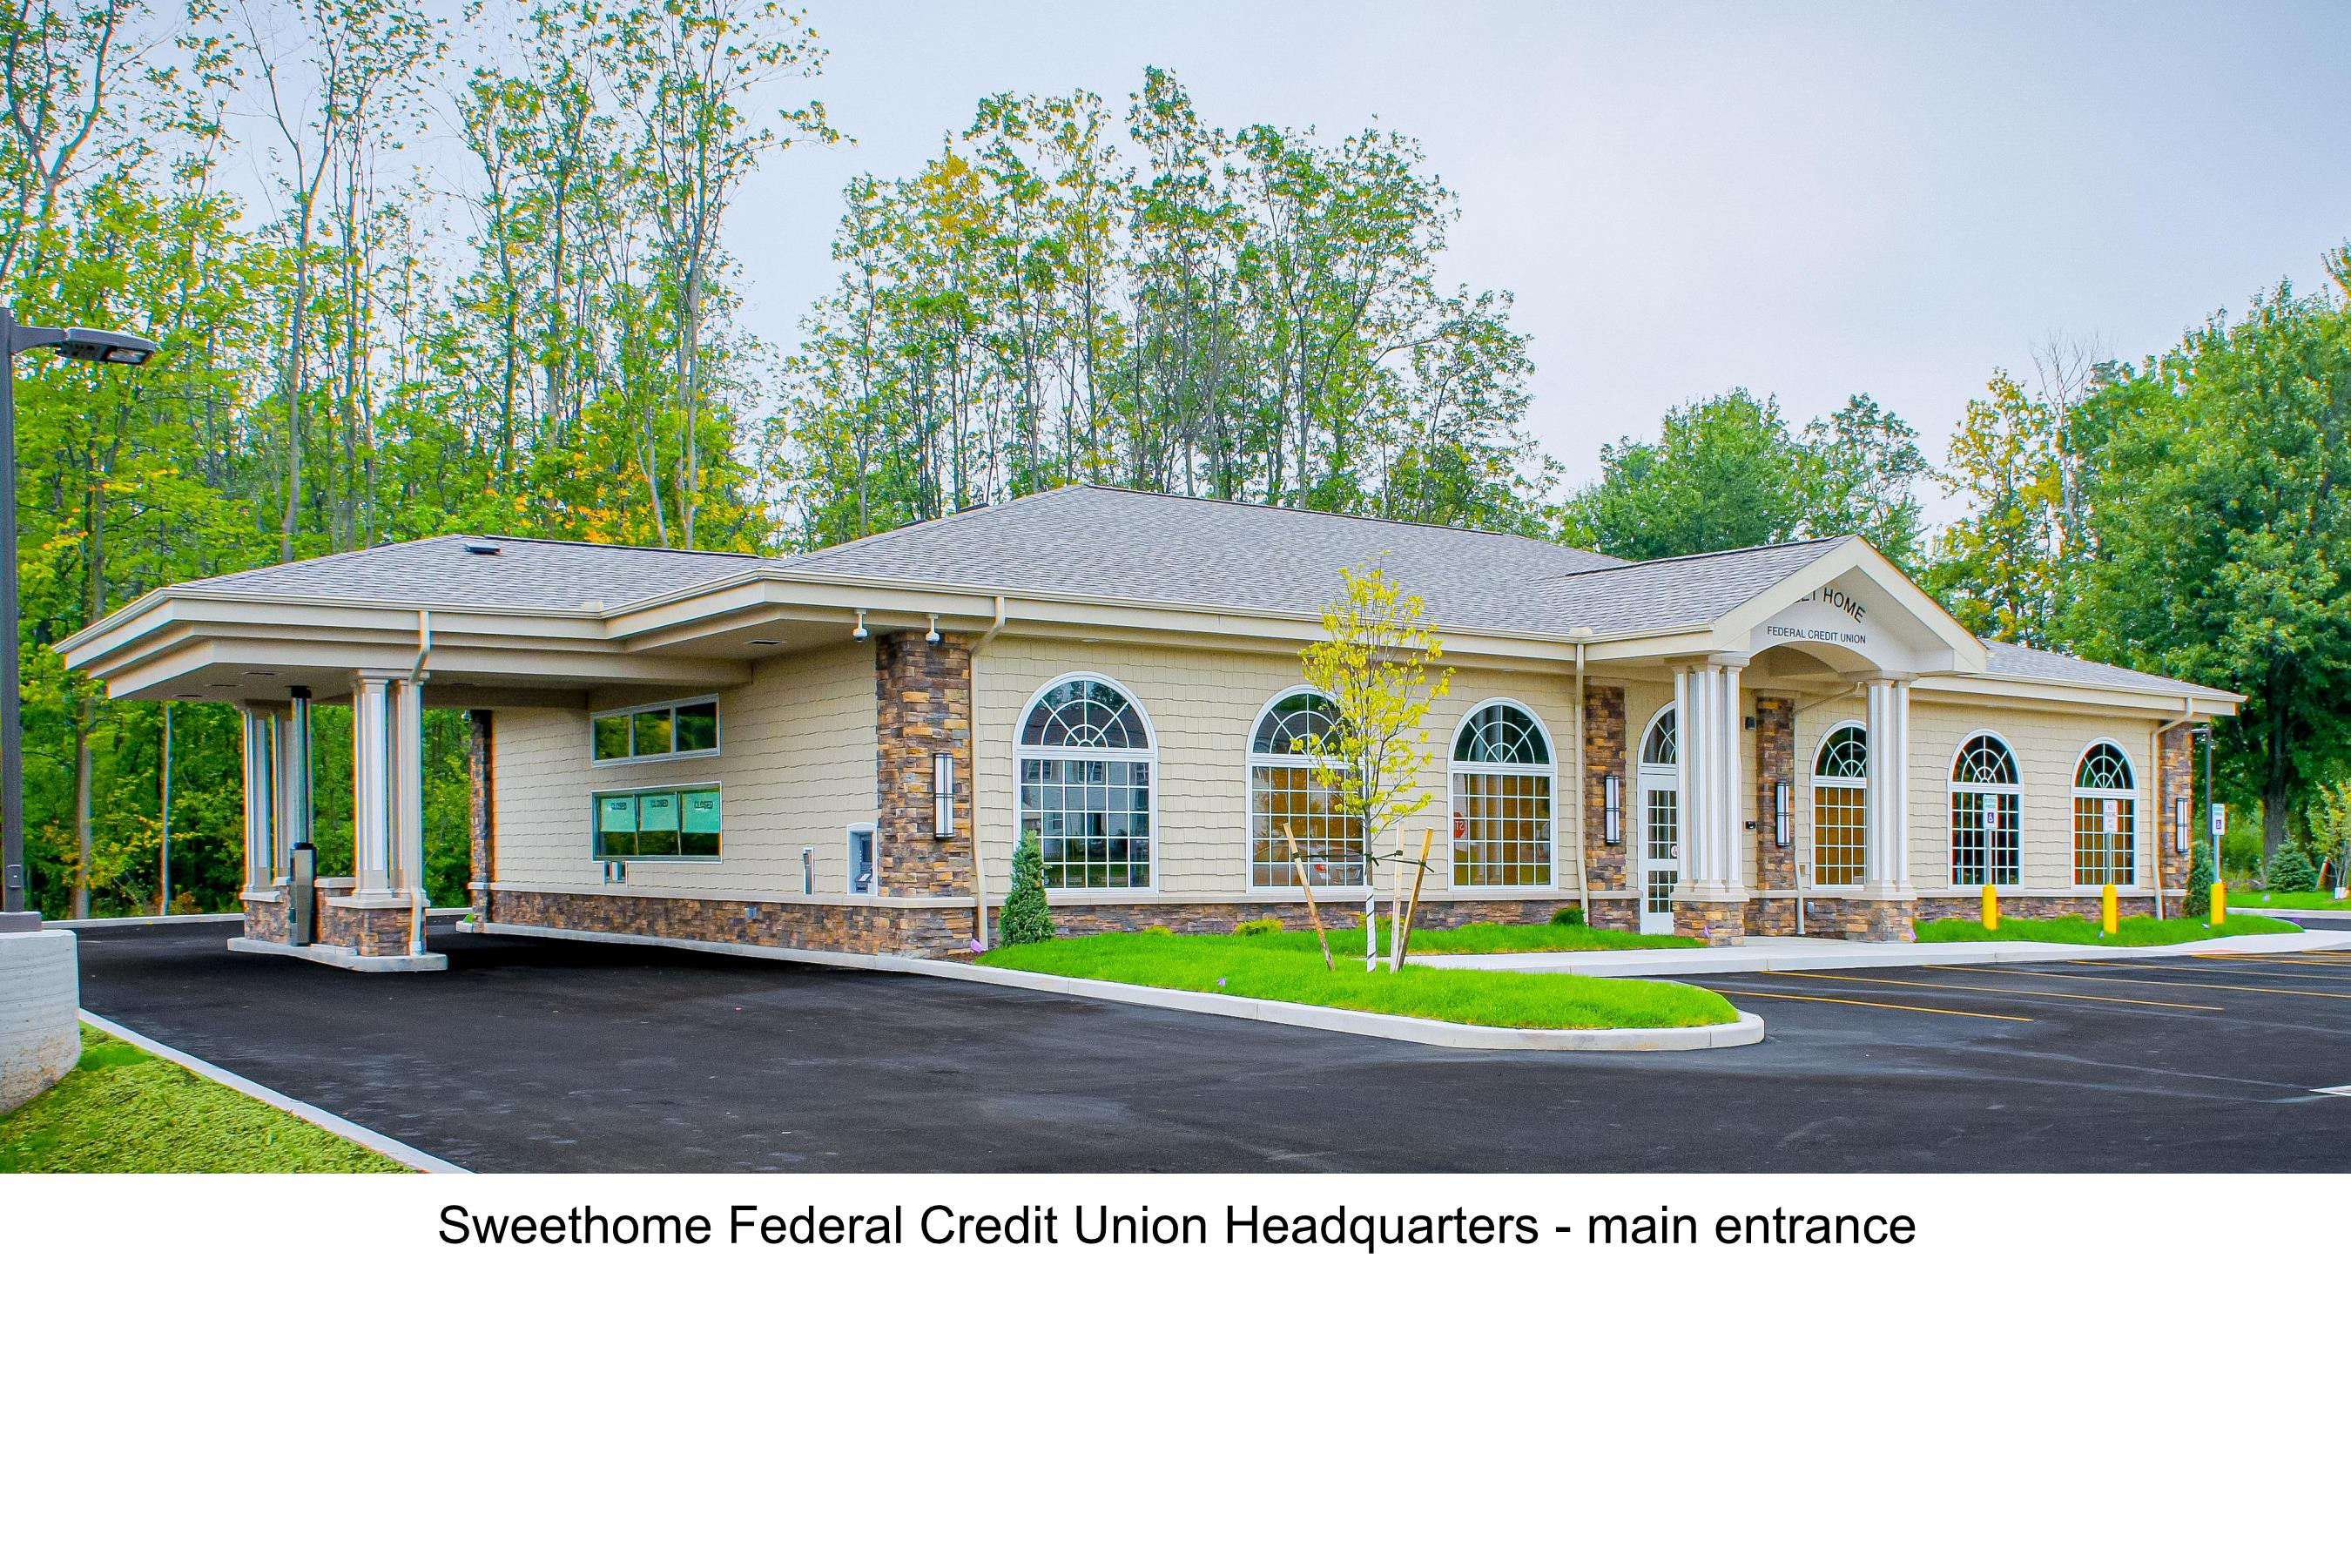 Sweethome Federal Credit Union